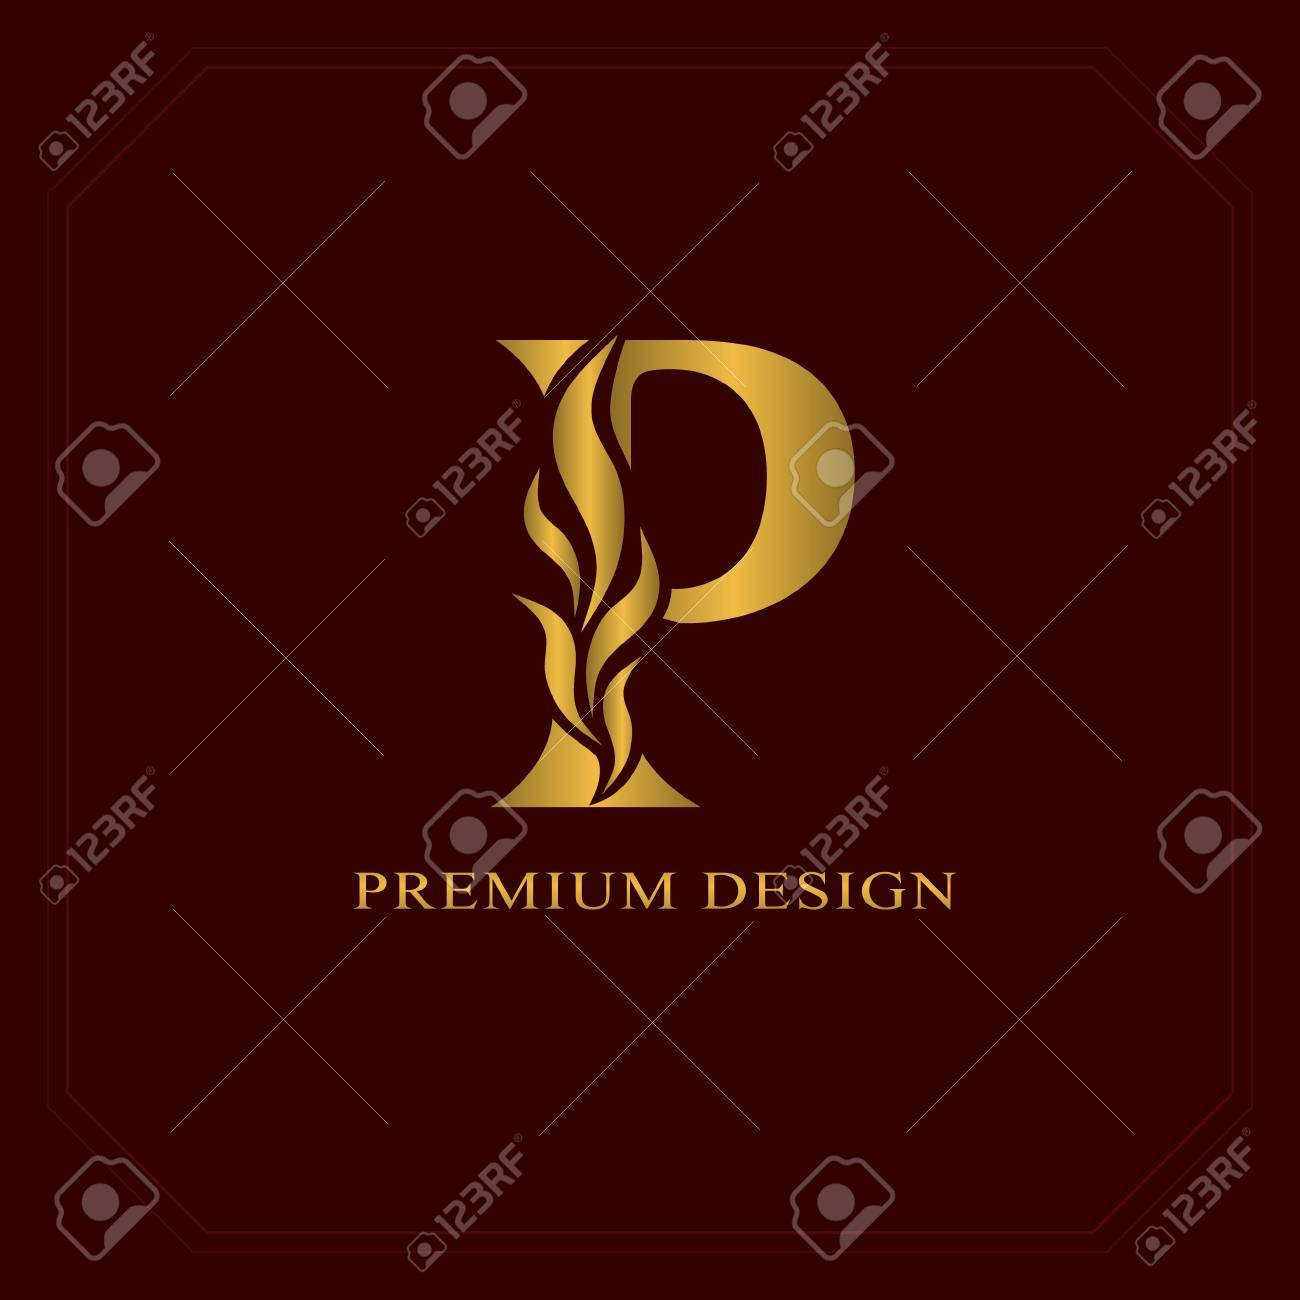 gold elegant letter p graceful style calligraphic beautiful logo vintage drawn emblem for